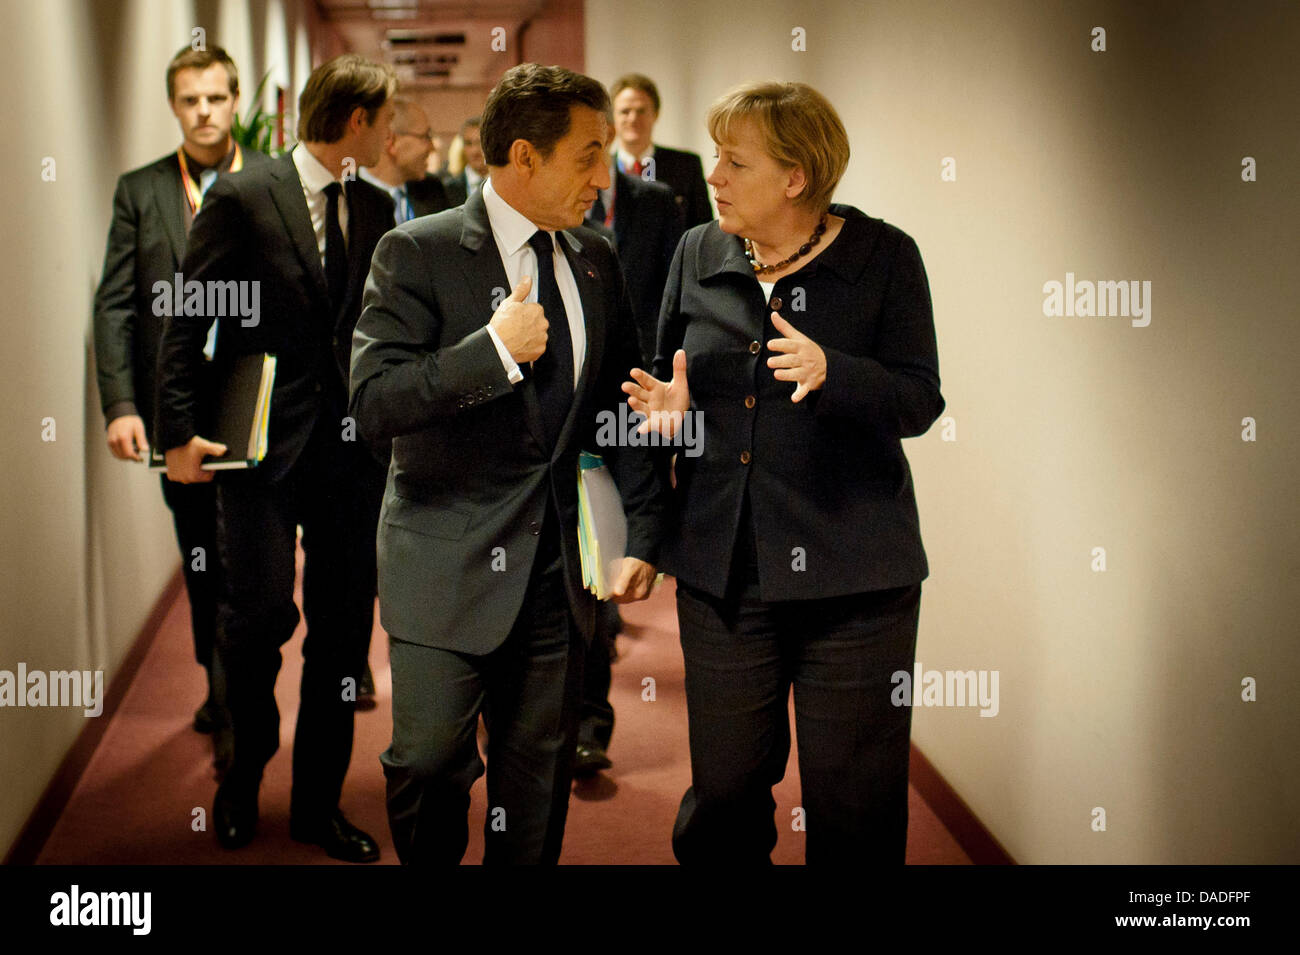 German Chancellor Angela Merkel (CDU) and French President Nicolas Sarkozy talk in a corridor of the Council of - Stock Image